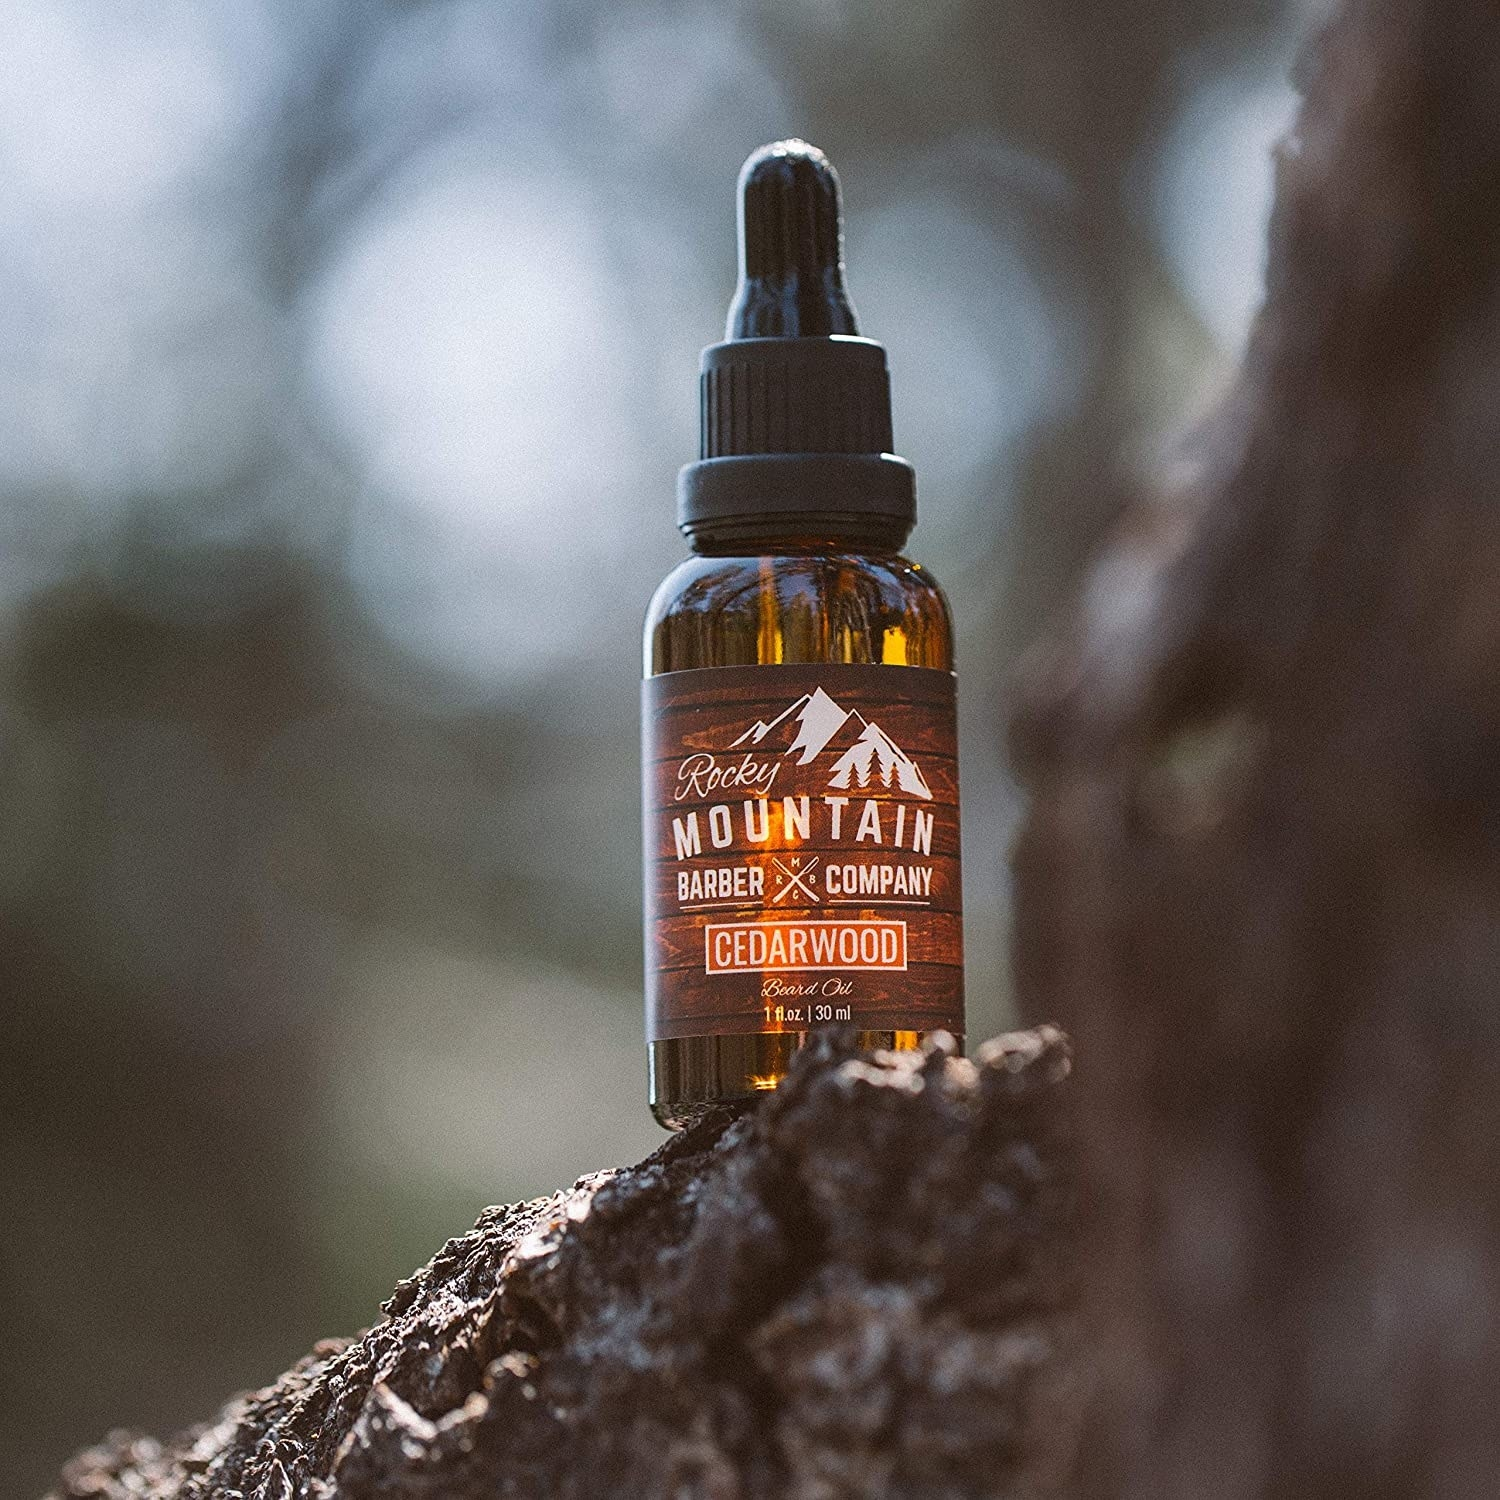 A bottle of the beard oil on a mountain rock